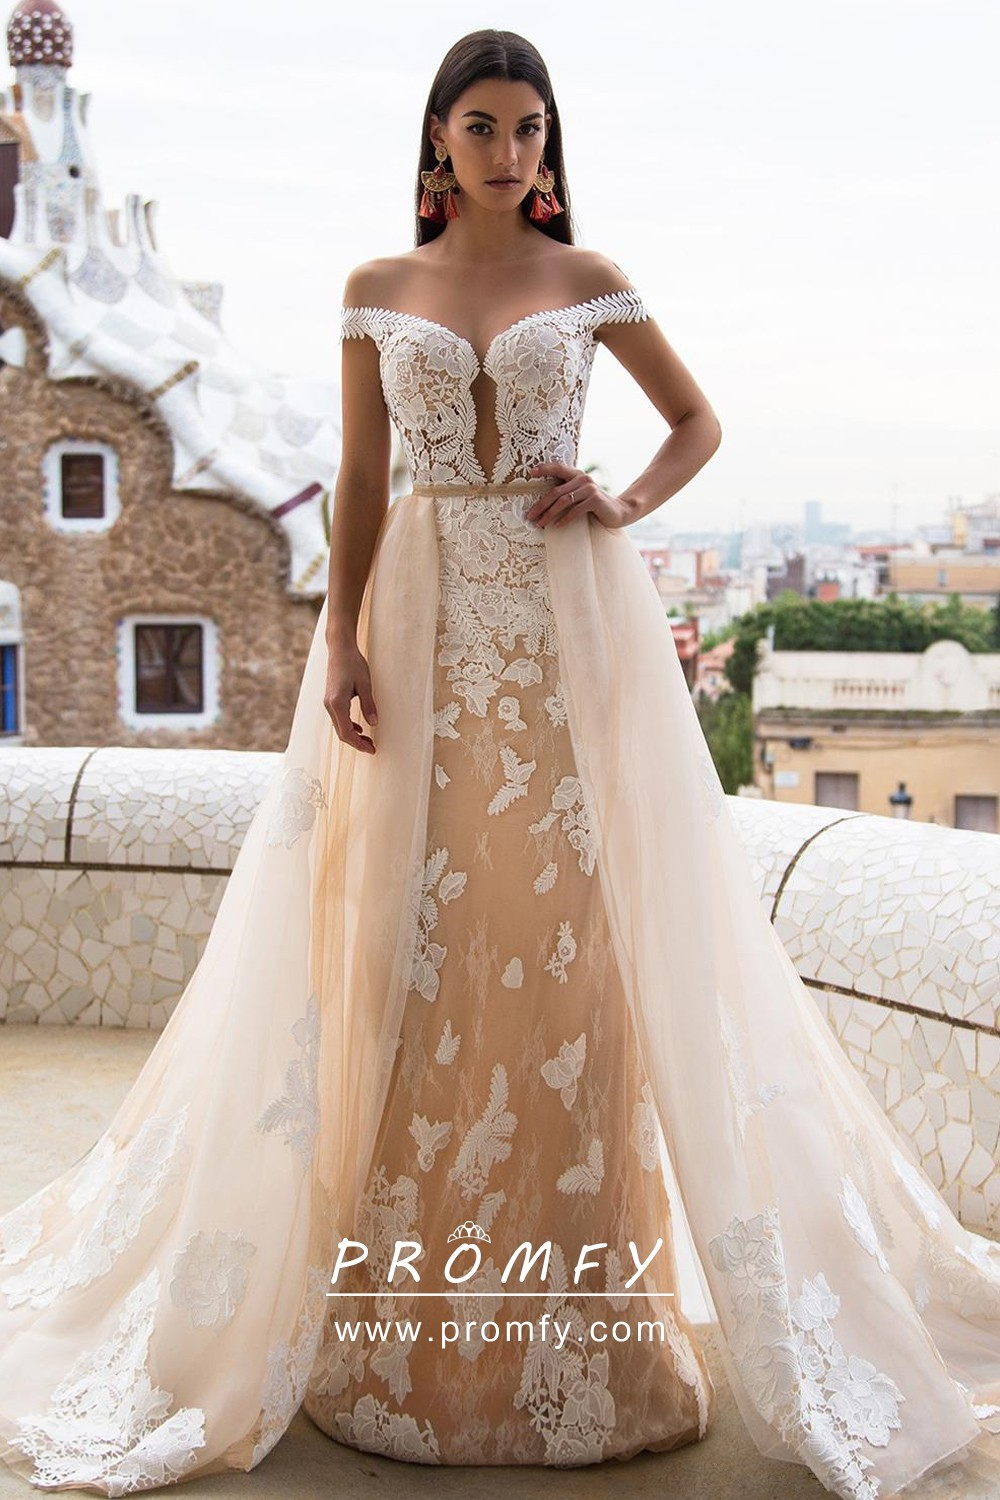 Champagne Tulle & White Lace 20 in 20 Wedding Dress   Promfy